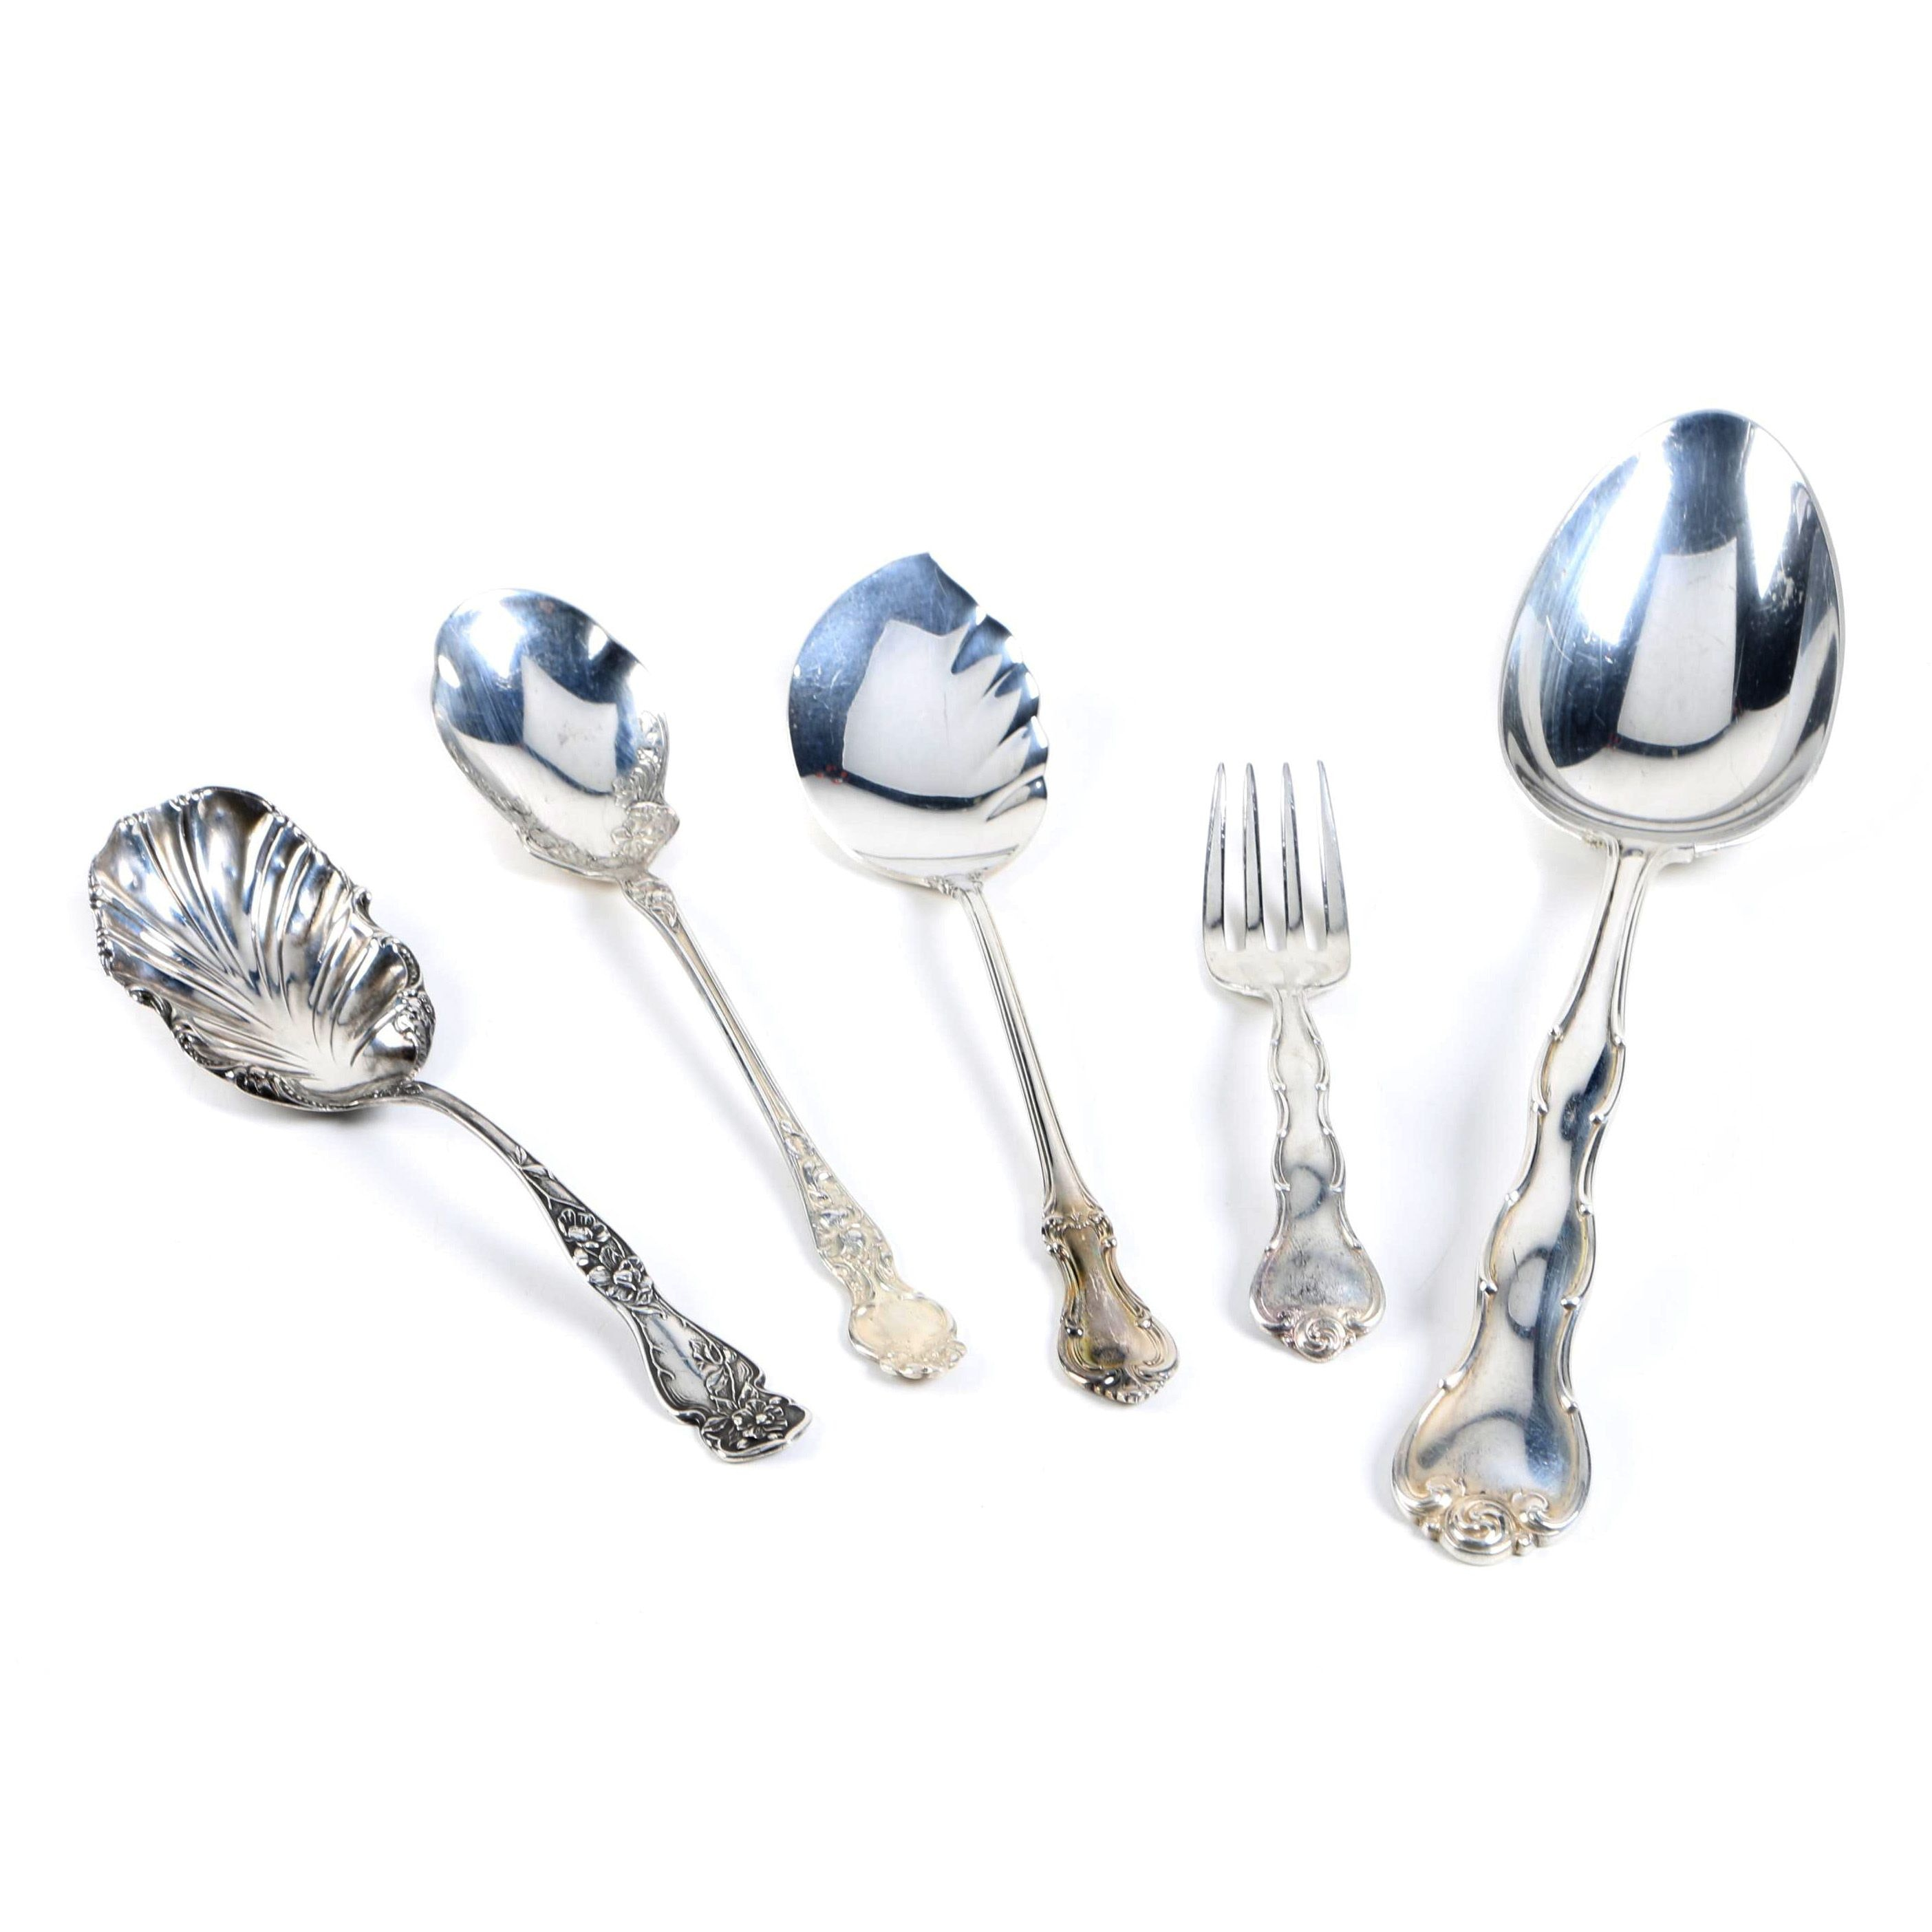 Gorham, R. Wallace & Sons, and Other Sterling Silver Flatware